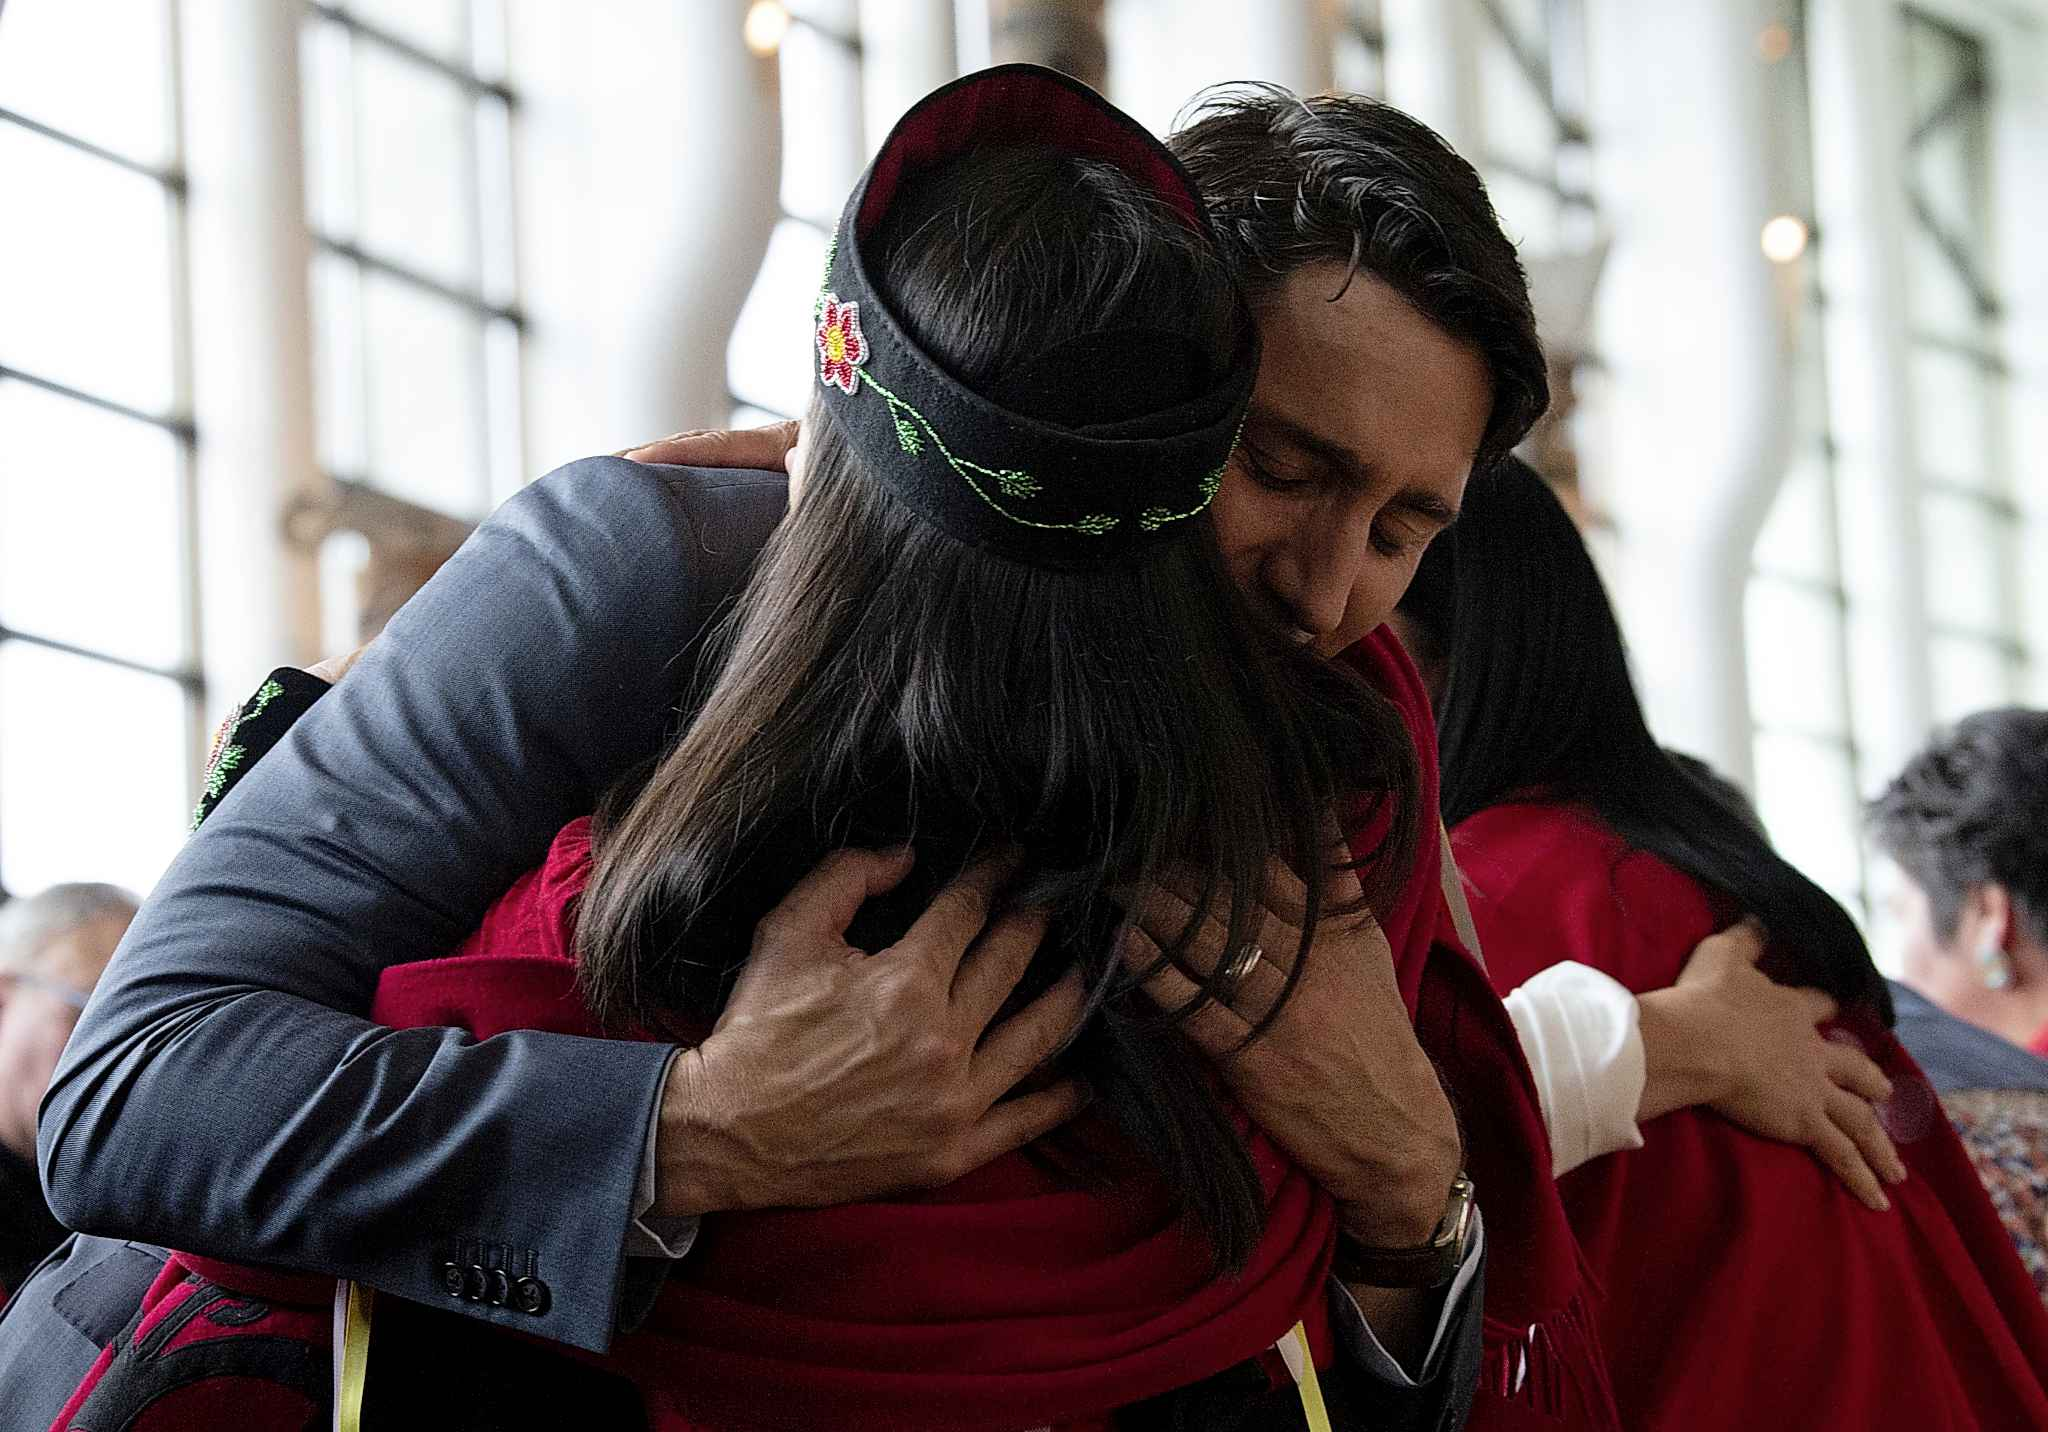 A woman is embraced by Canadian Prime Minister Justin Trudeau during ceremonies marking the release of the Missing and Murdered Indigenous Women report in Gatineau, Monday.